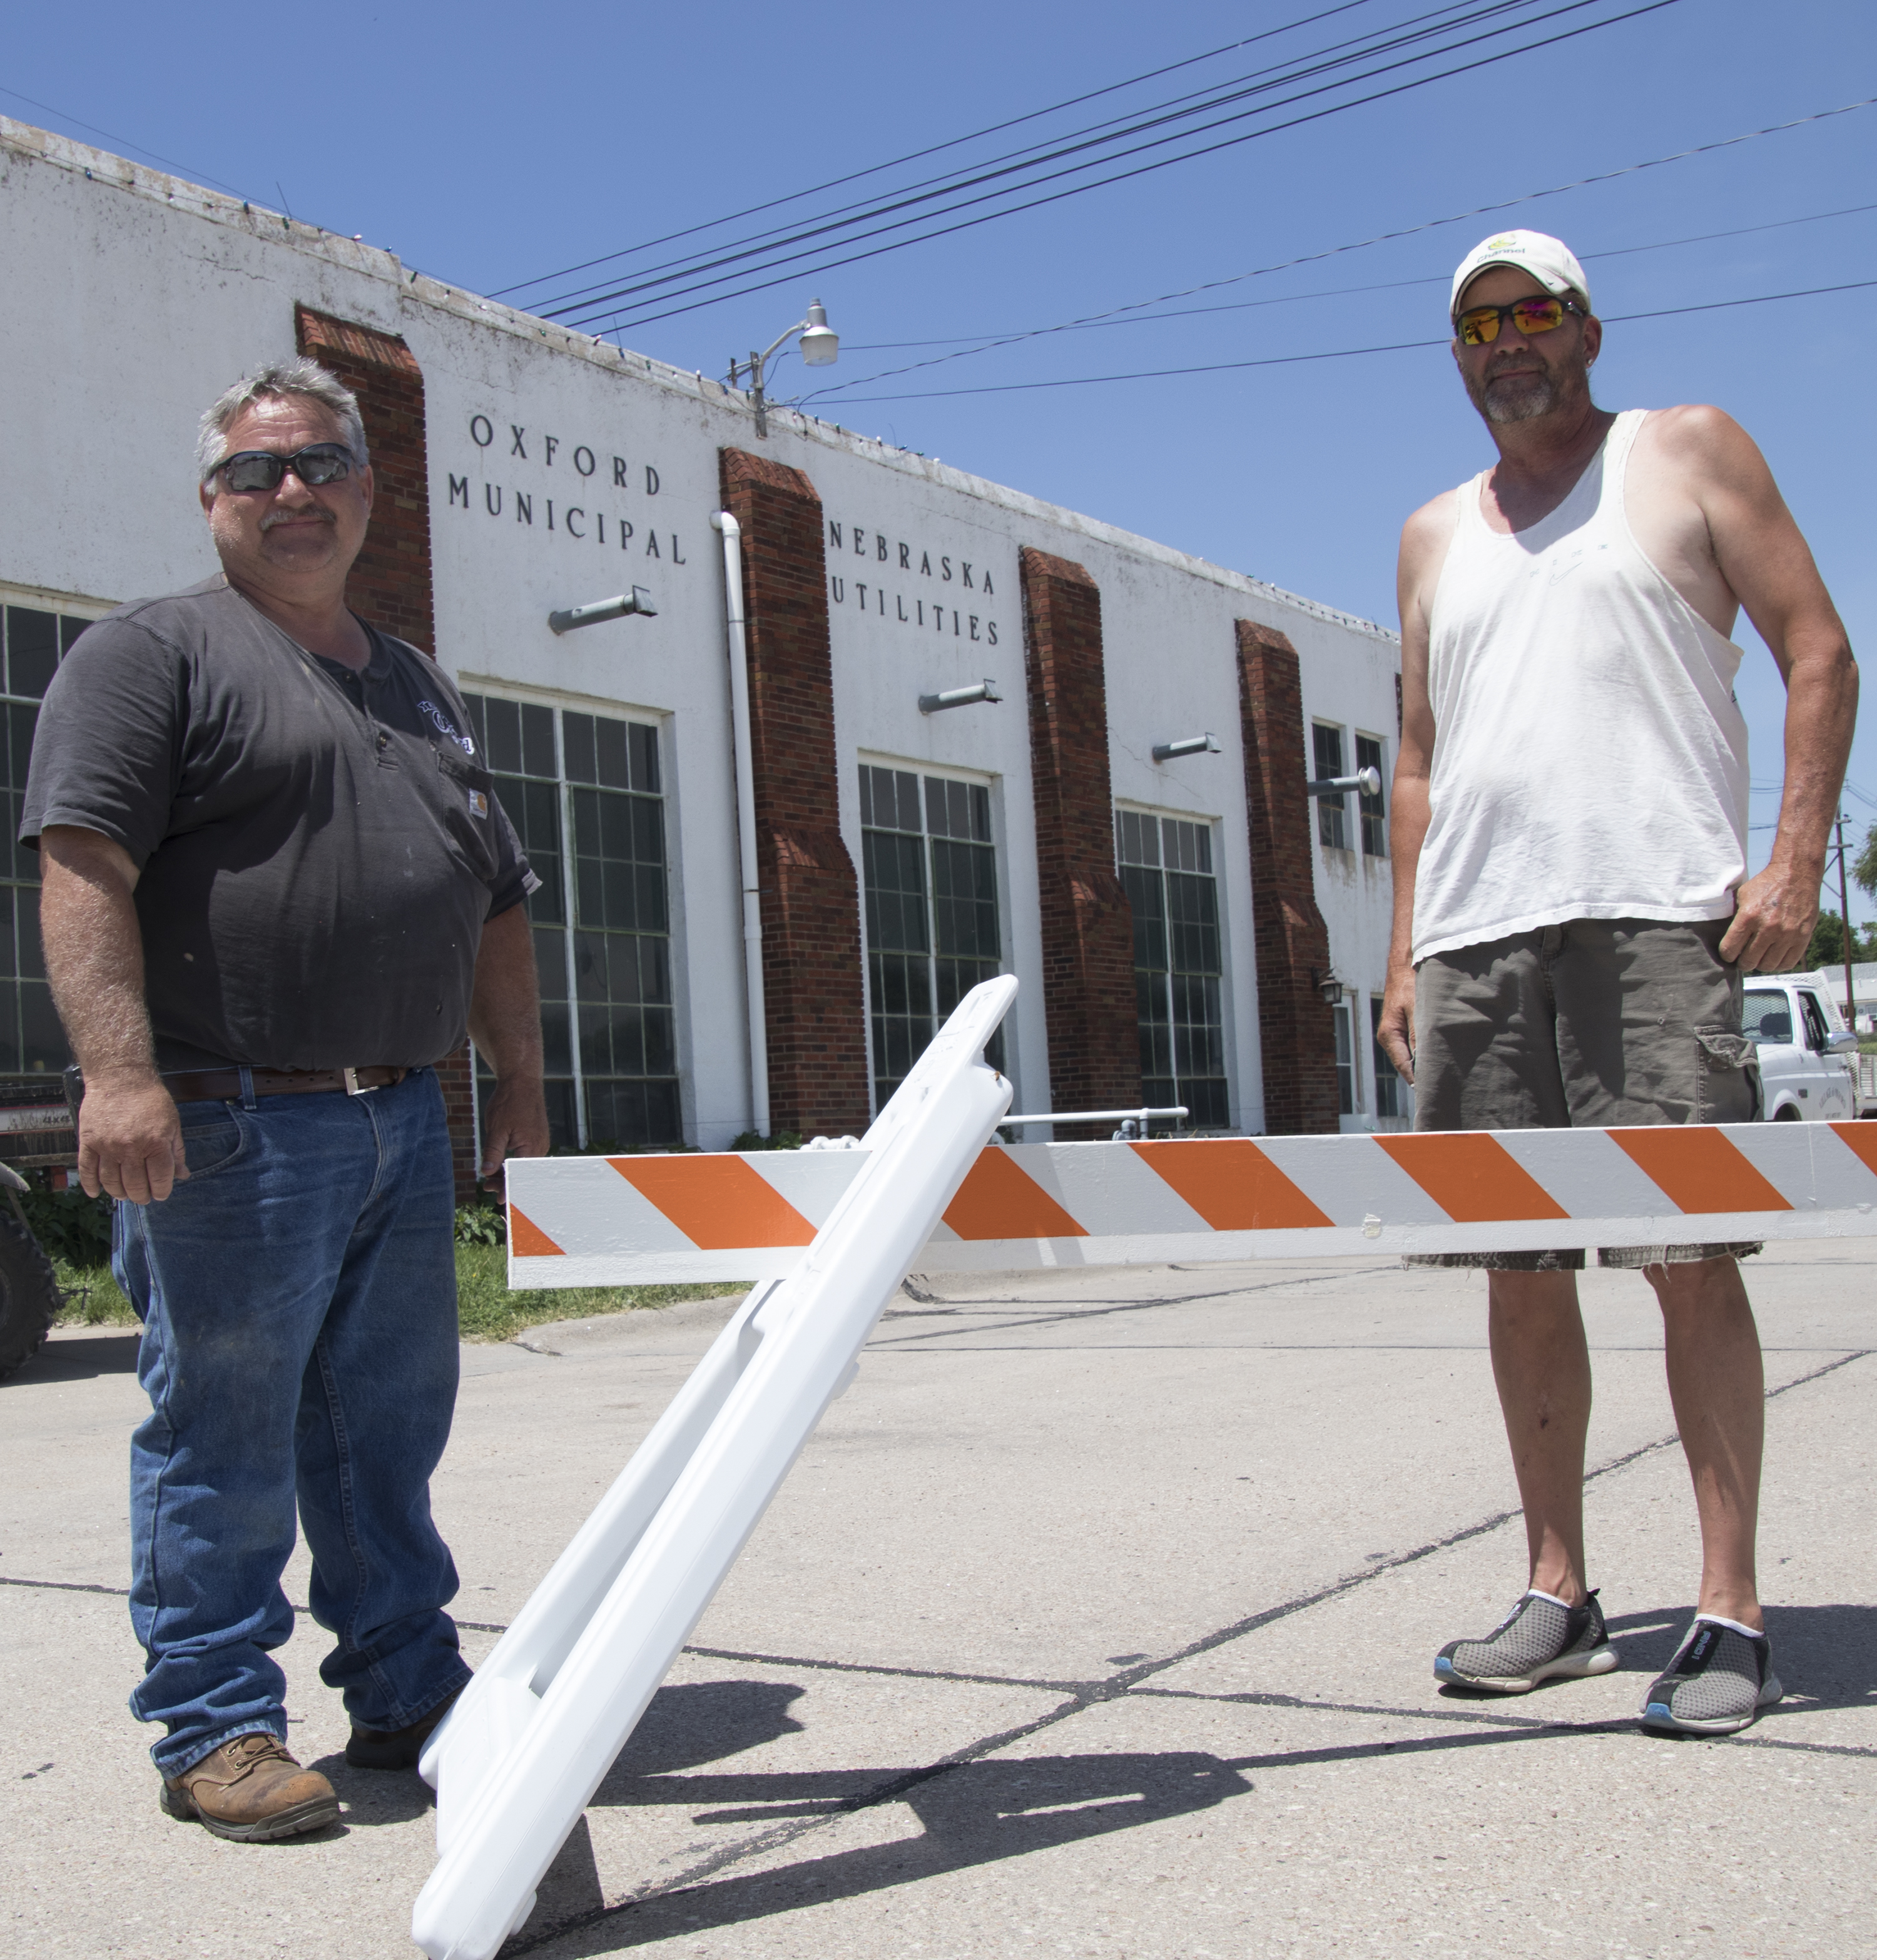 Oxford using new barricades from Lean on LARM grant